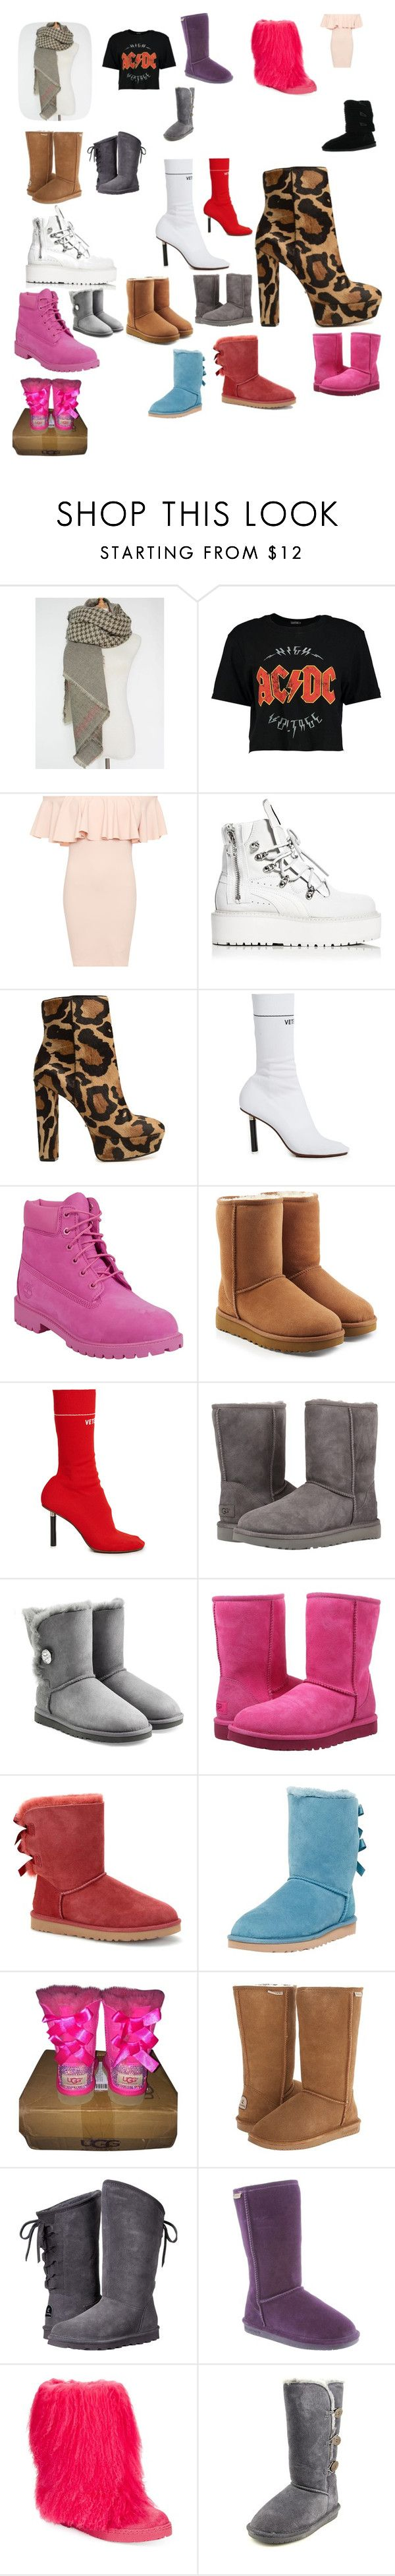 """""""Boots Booties"""" by jewel21097 ❤ liked on Polyvore featuring Boohoo, WearAll, Puma, Schutz, Vetements, Timberland, UGG, UGG Australia and Bearpaw"""